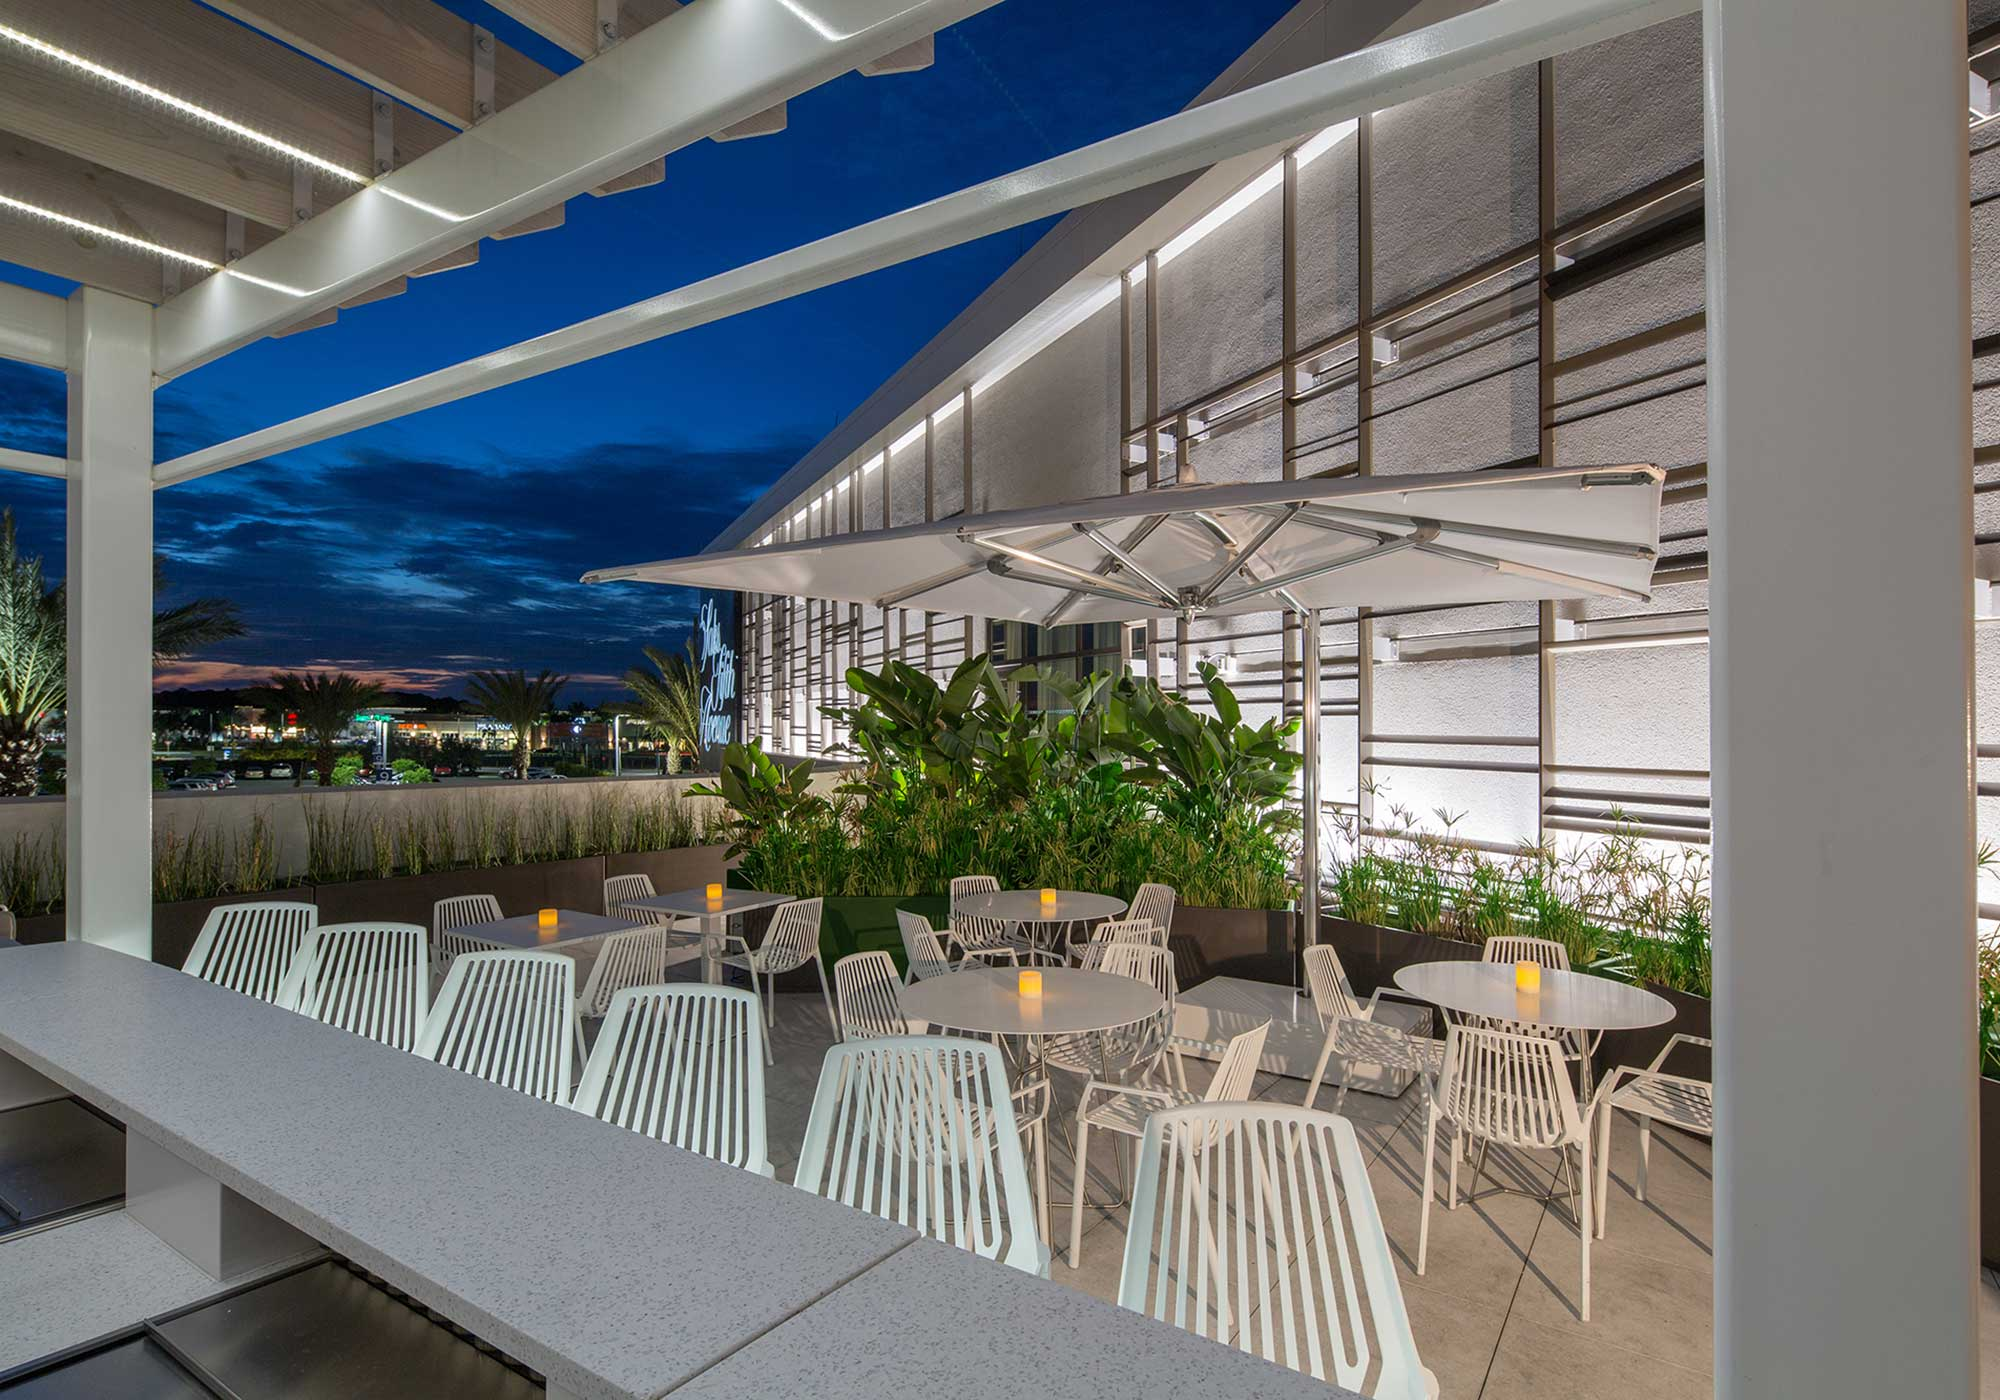 Outdoor dining area at twilight